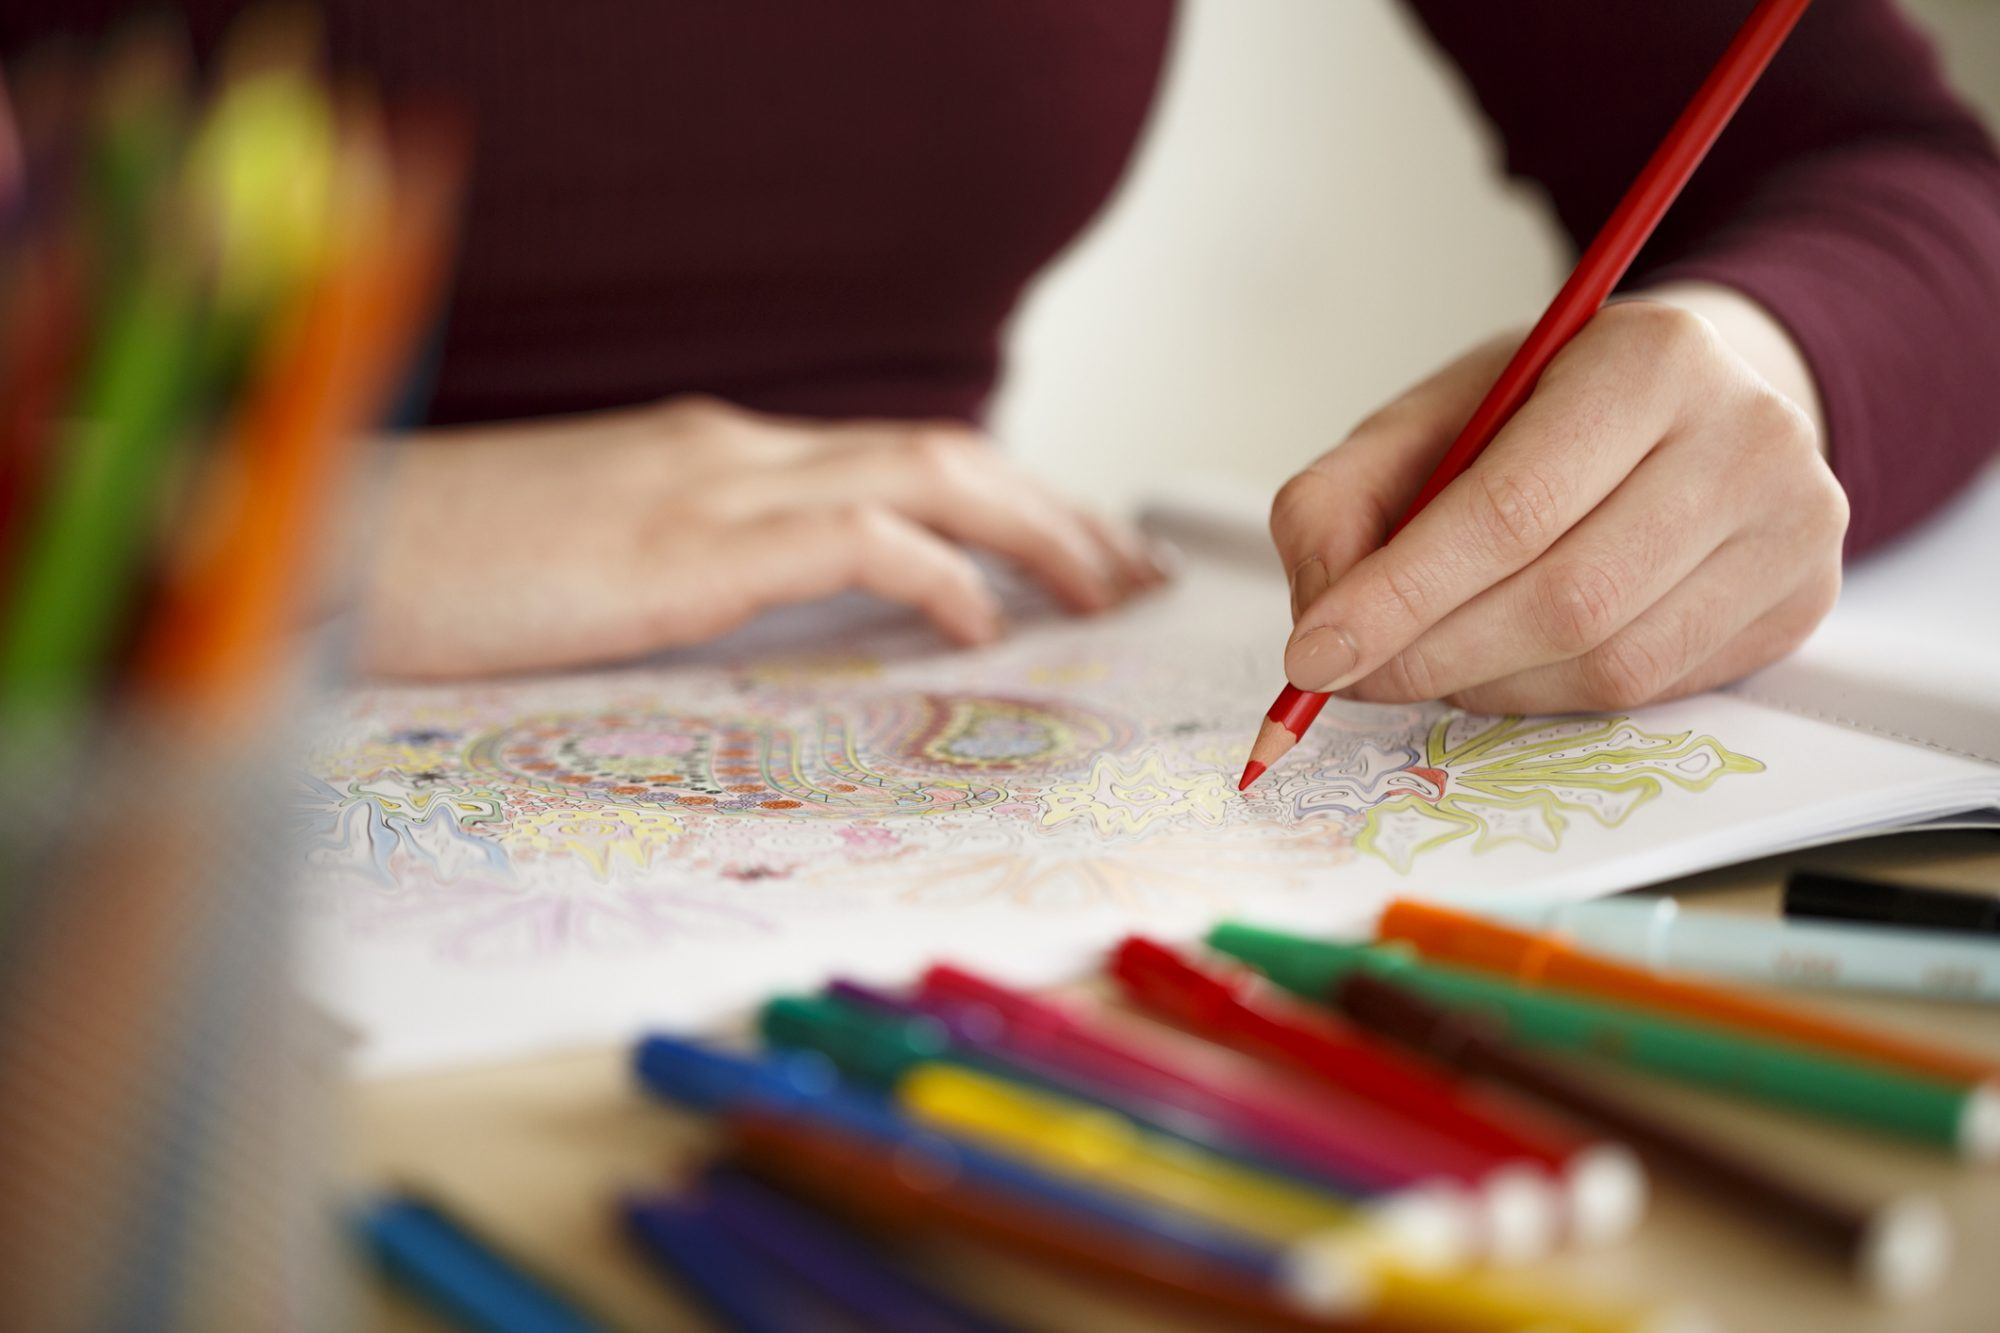 Woman Coloring An Adult Coloring Book